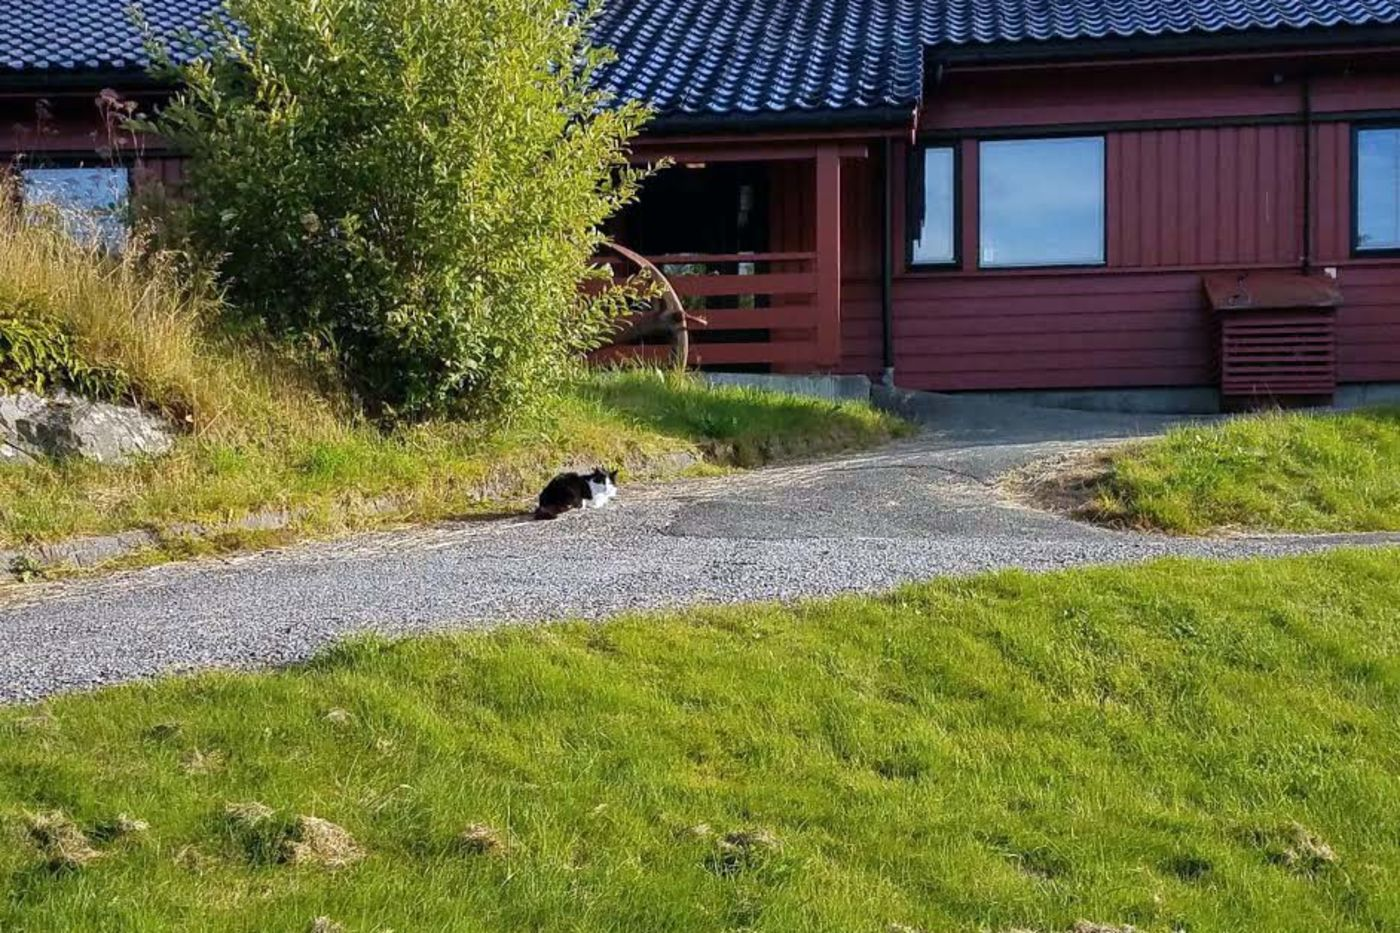 A black and white cat on a grassy hill in front of a red house